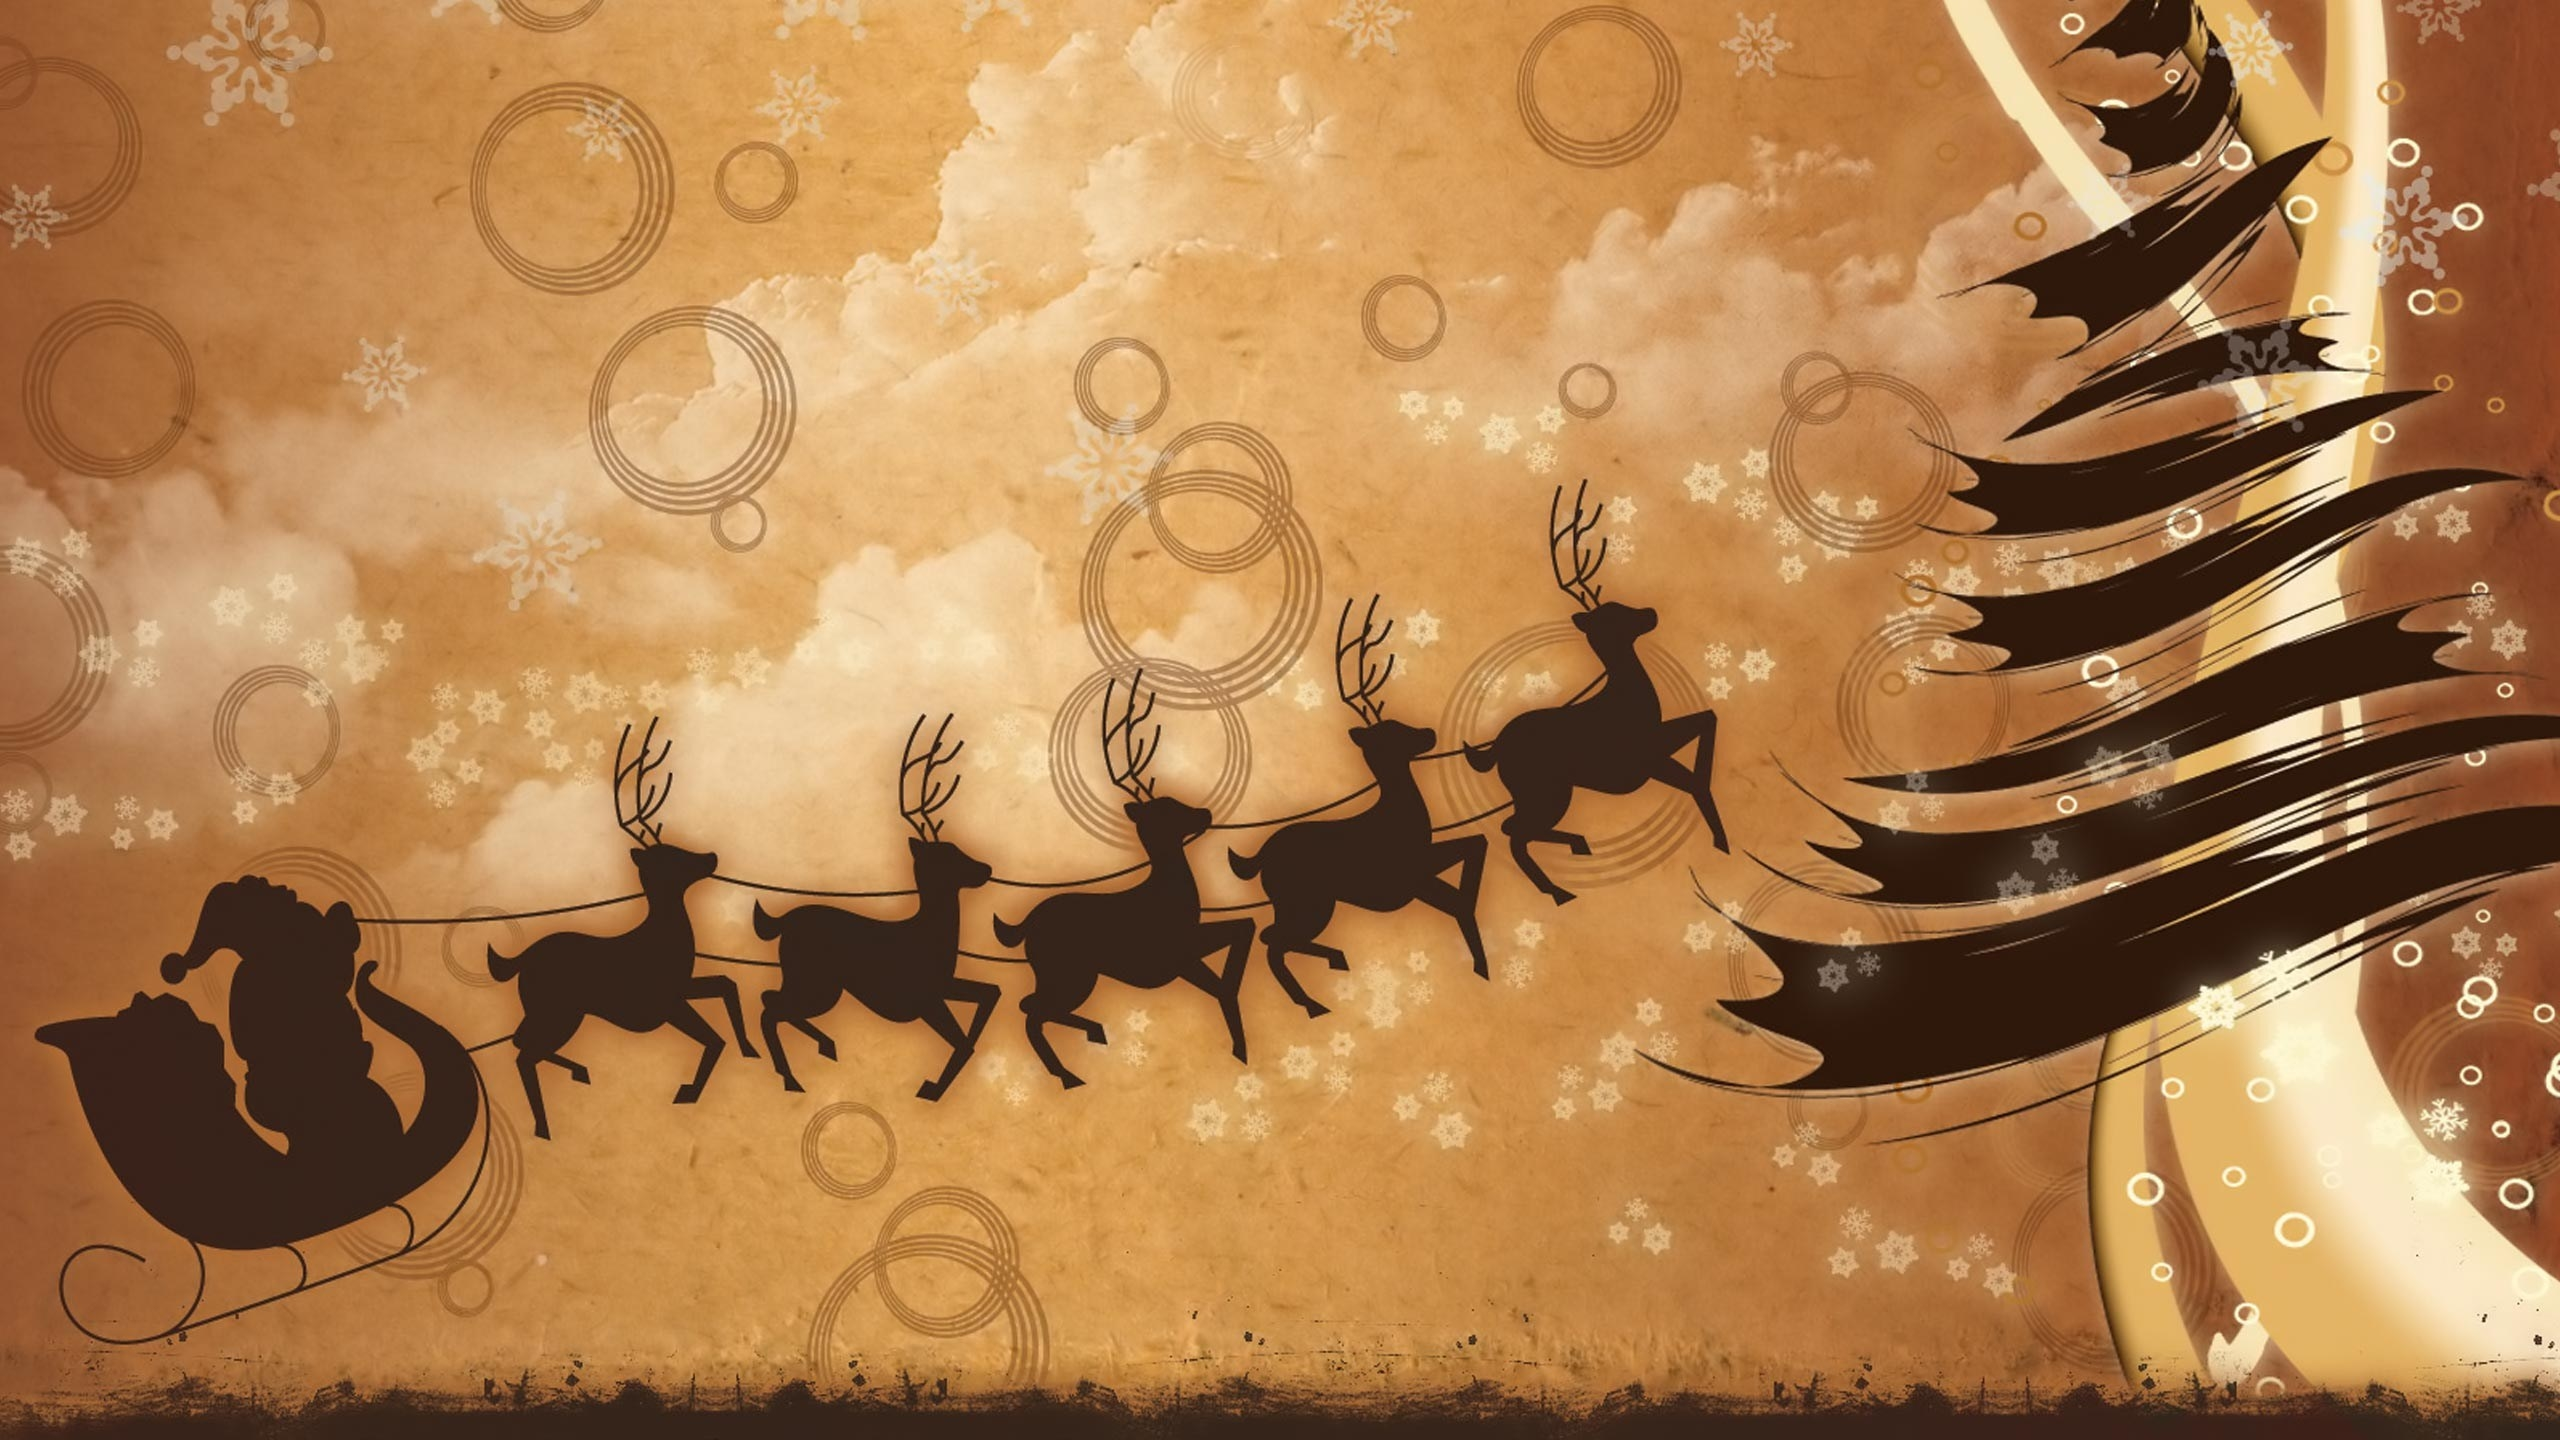 santa claus rein deer cartoon art wallpaper